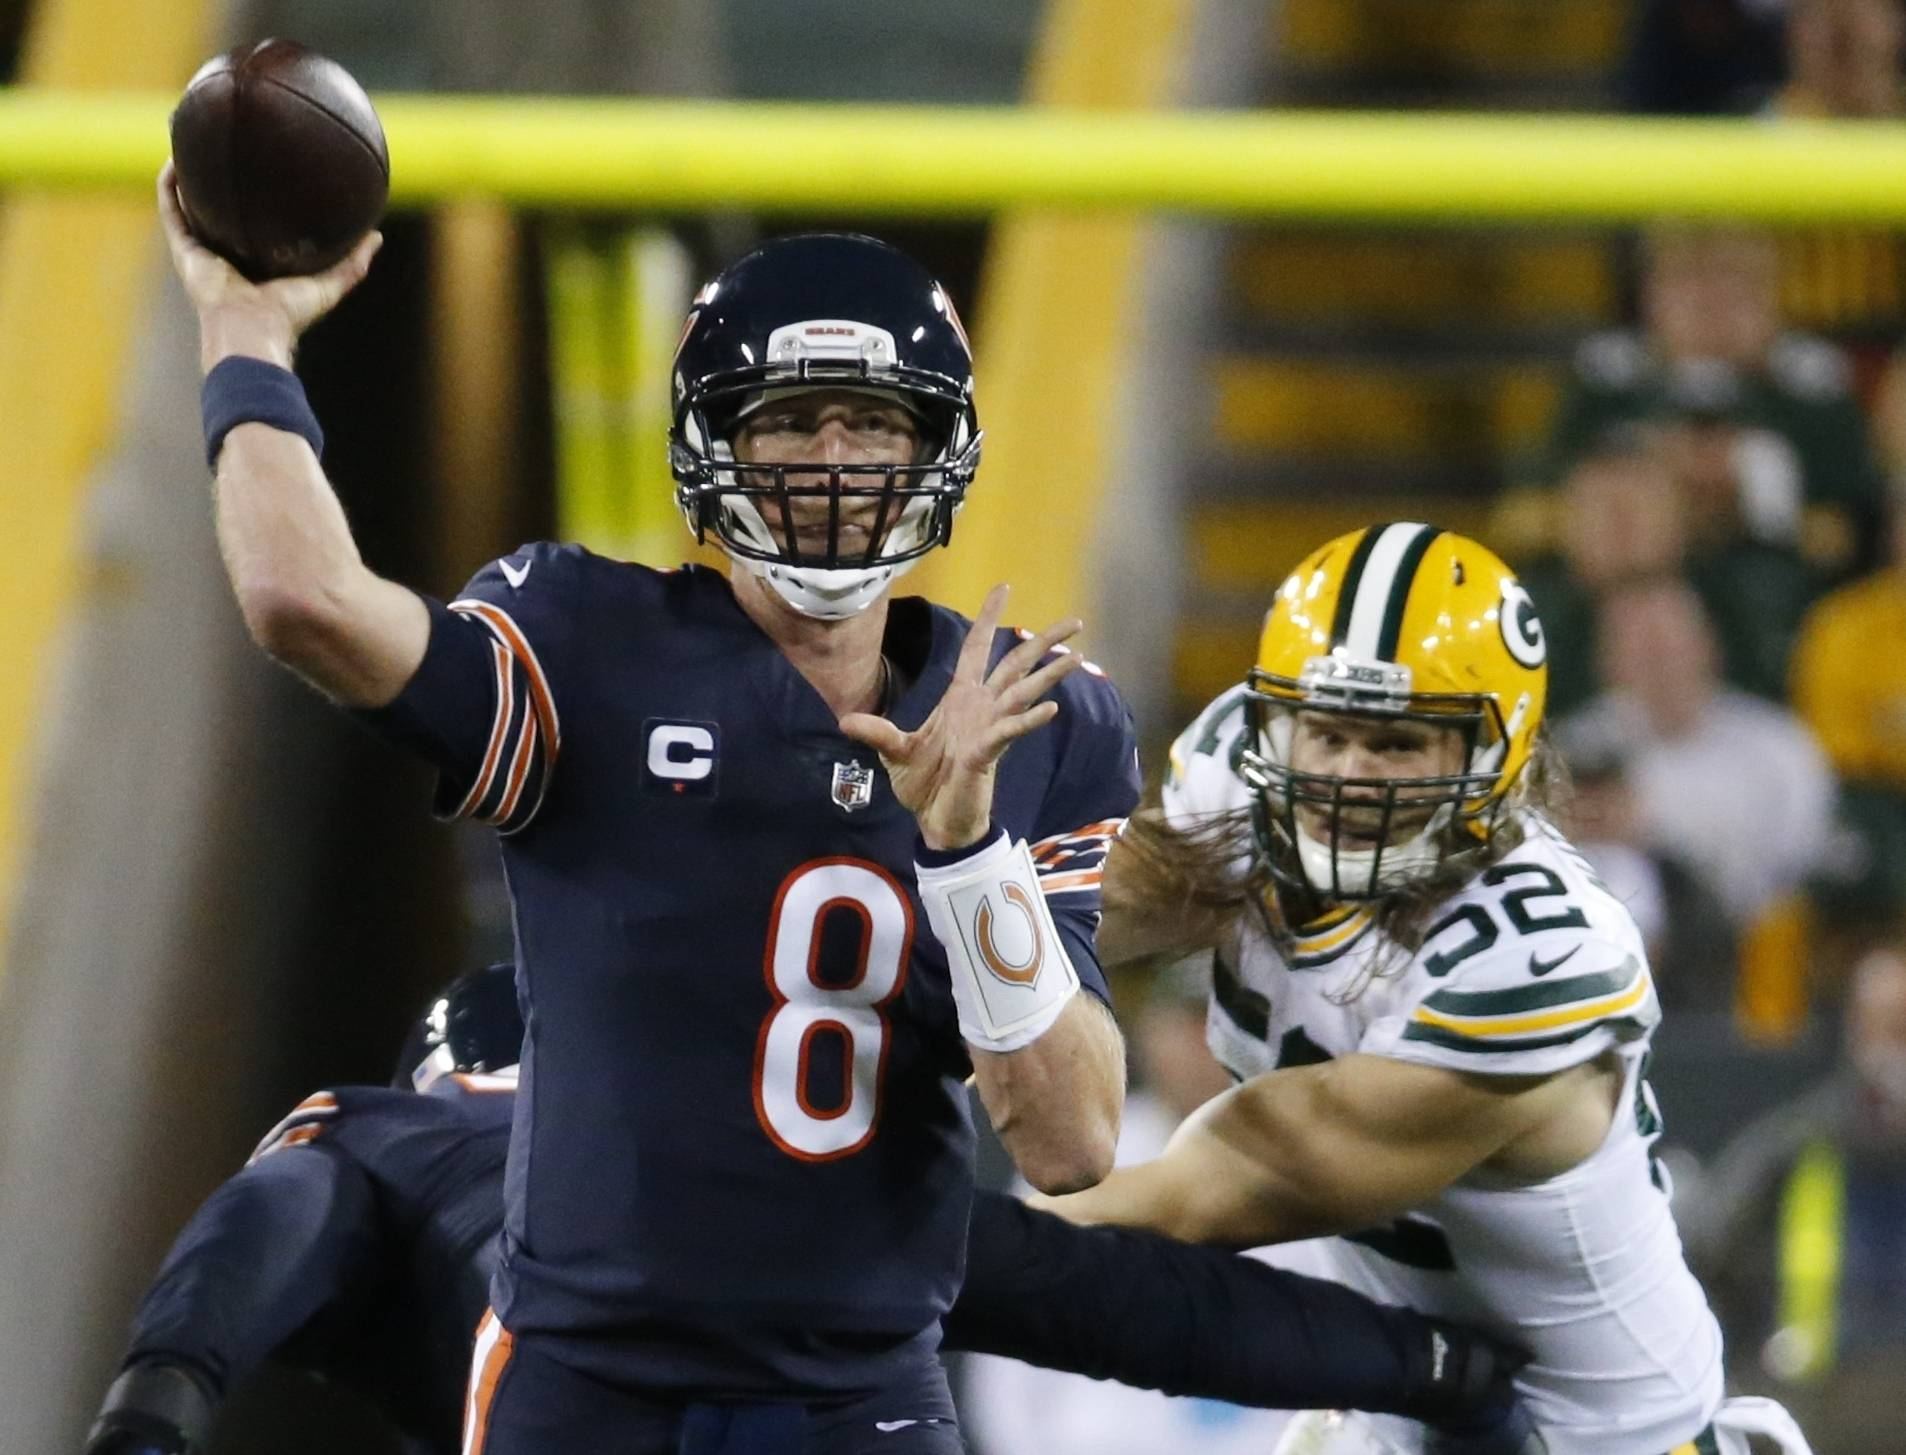 Will Chicago Bears change QBs? Fox not saying much